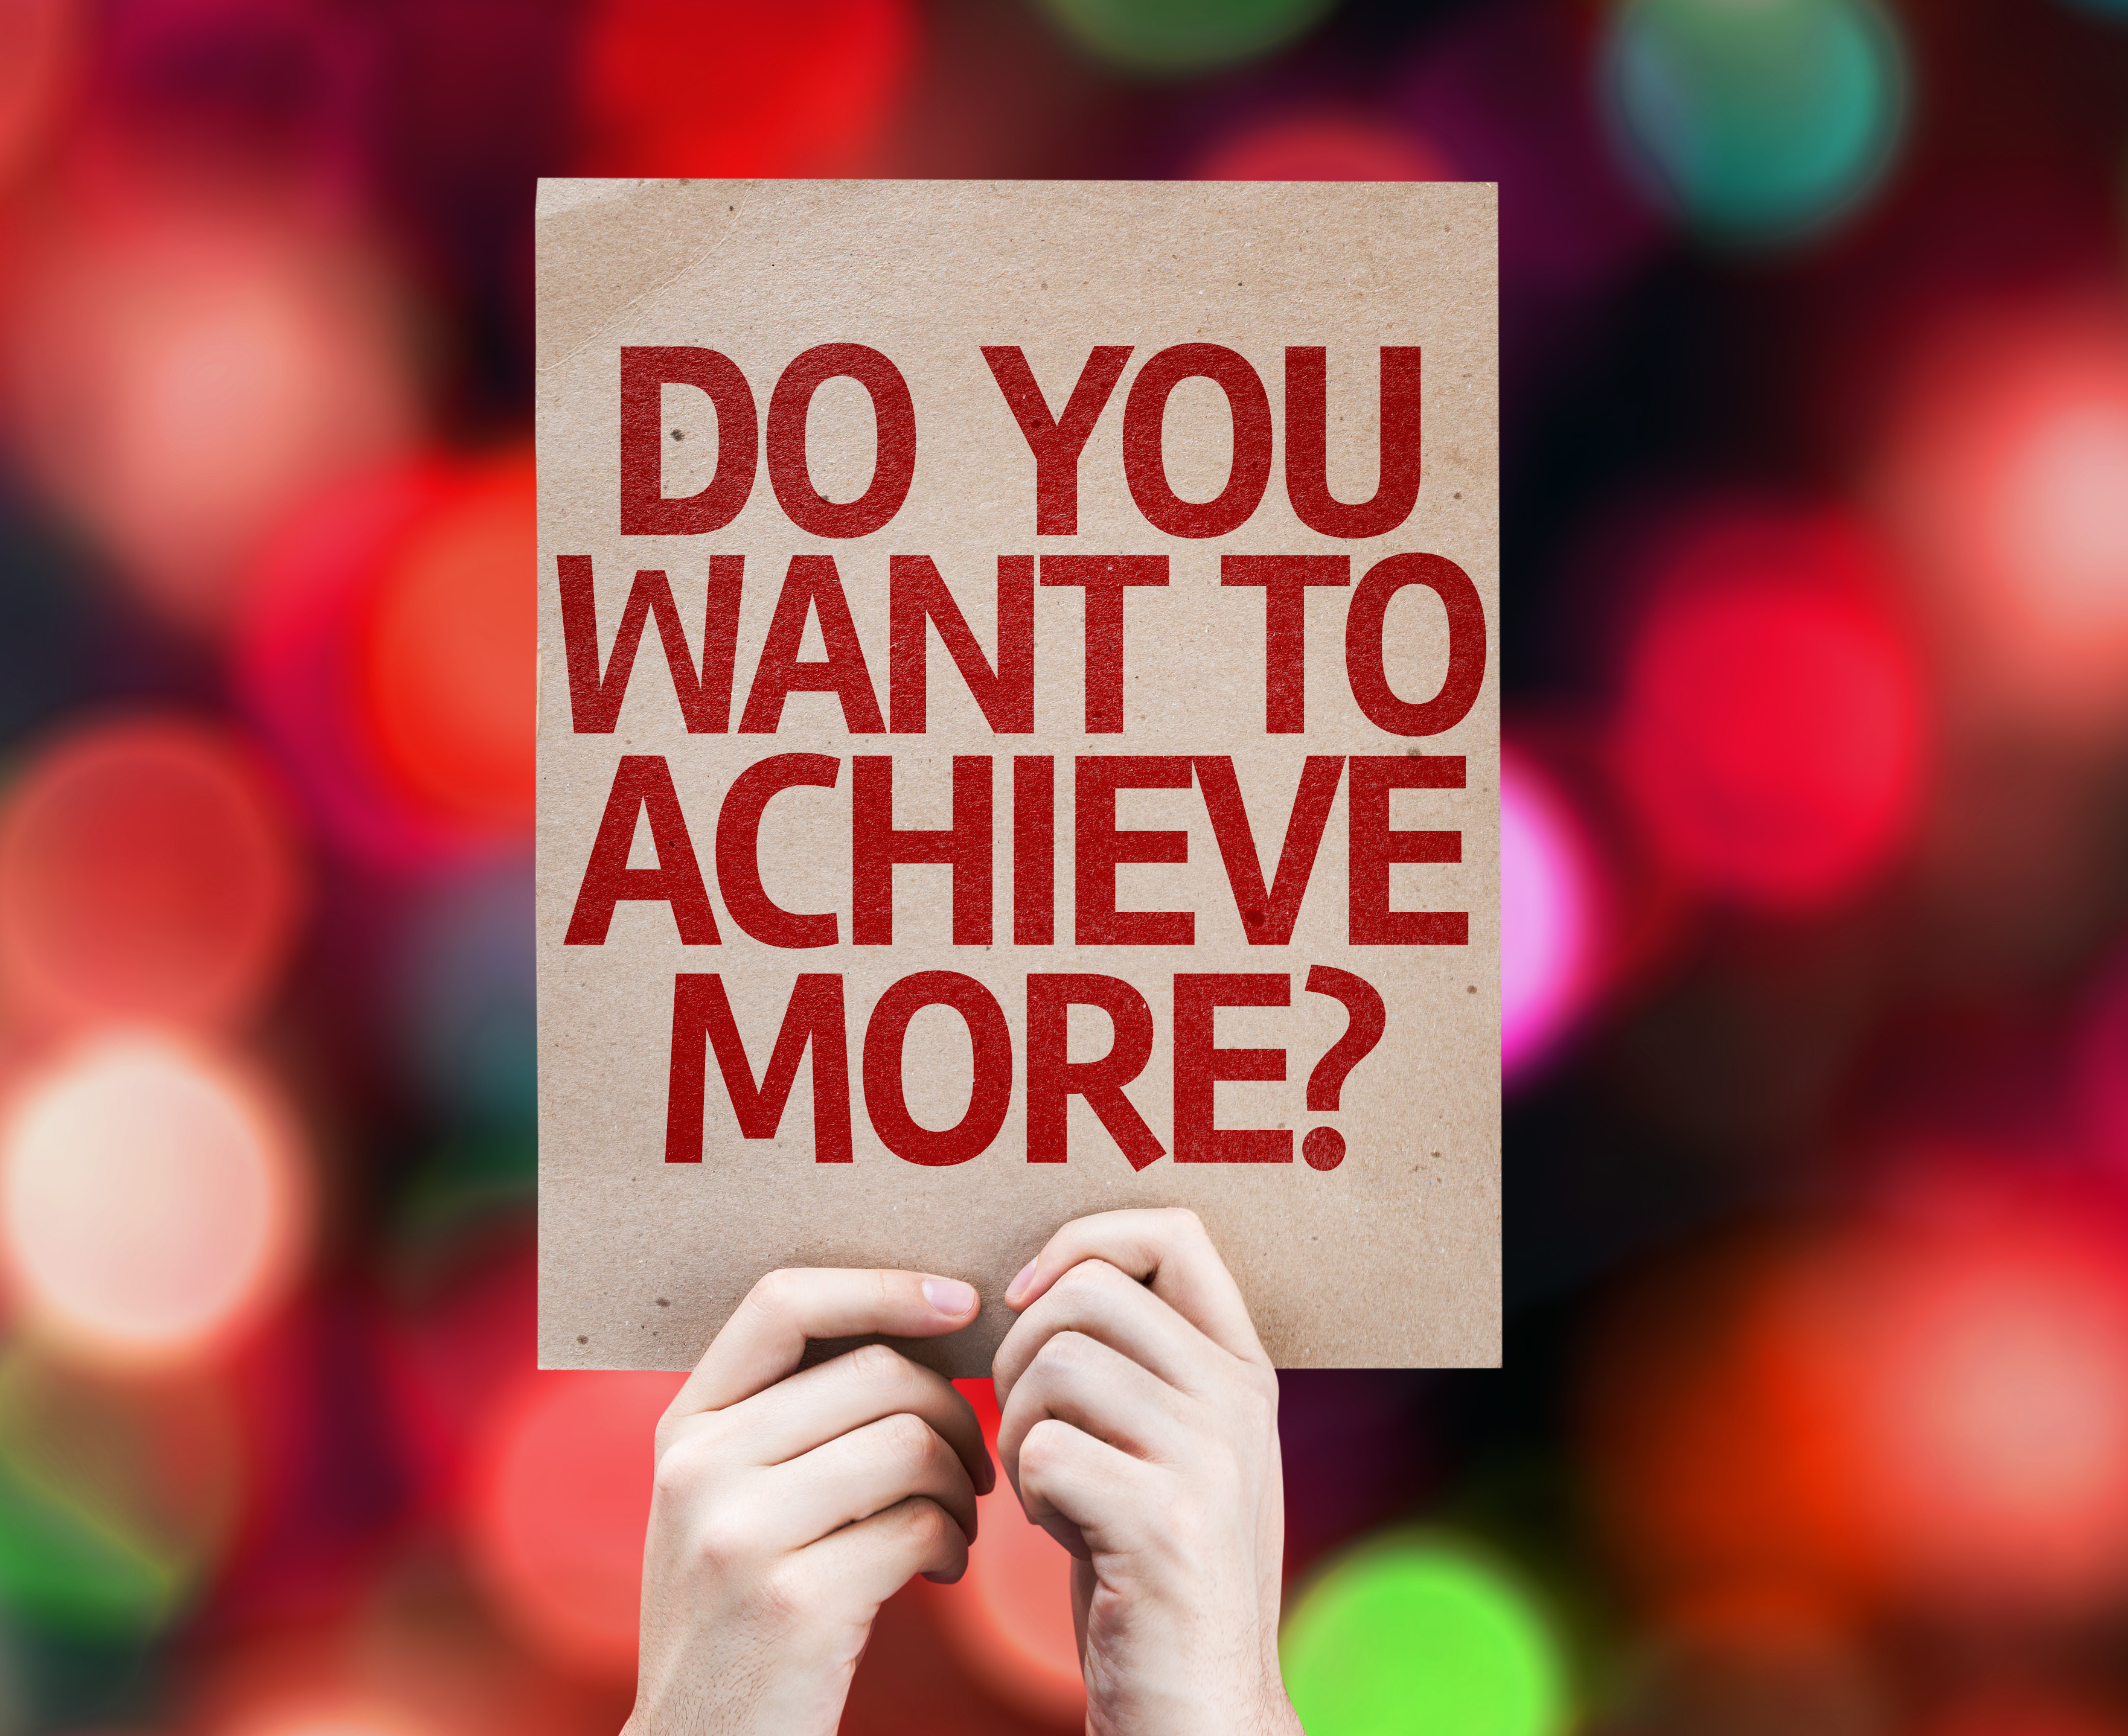 Do You Want to Achieve More? sign